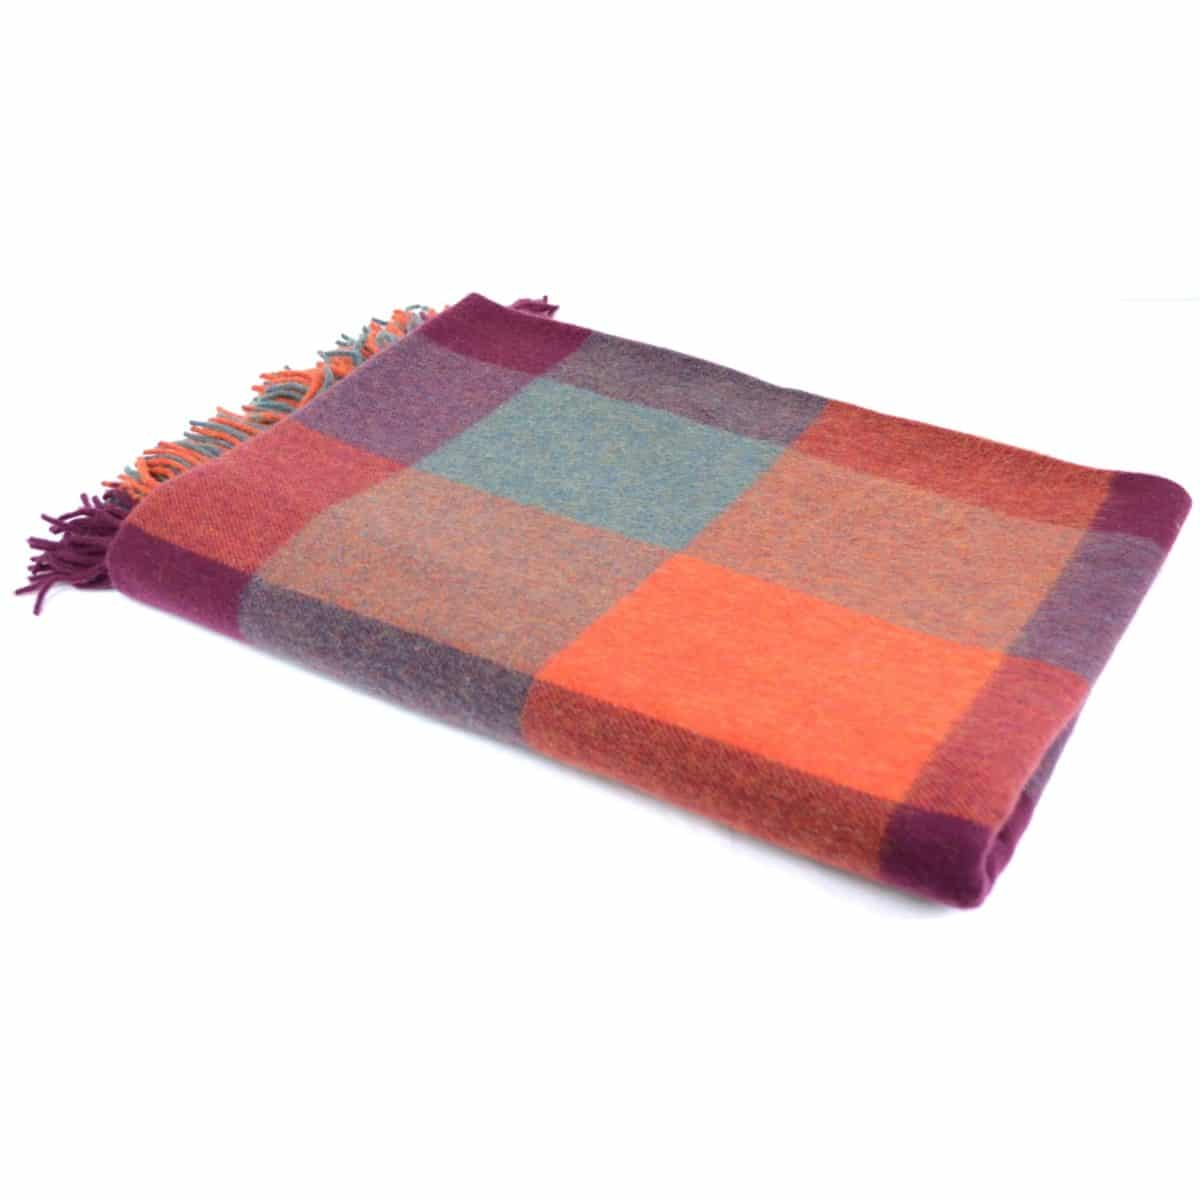 Lambswool Blanket / Throw - Mulberry Delight